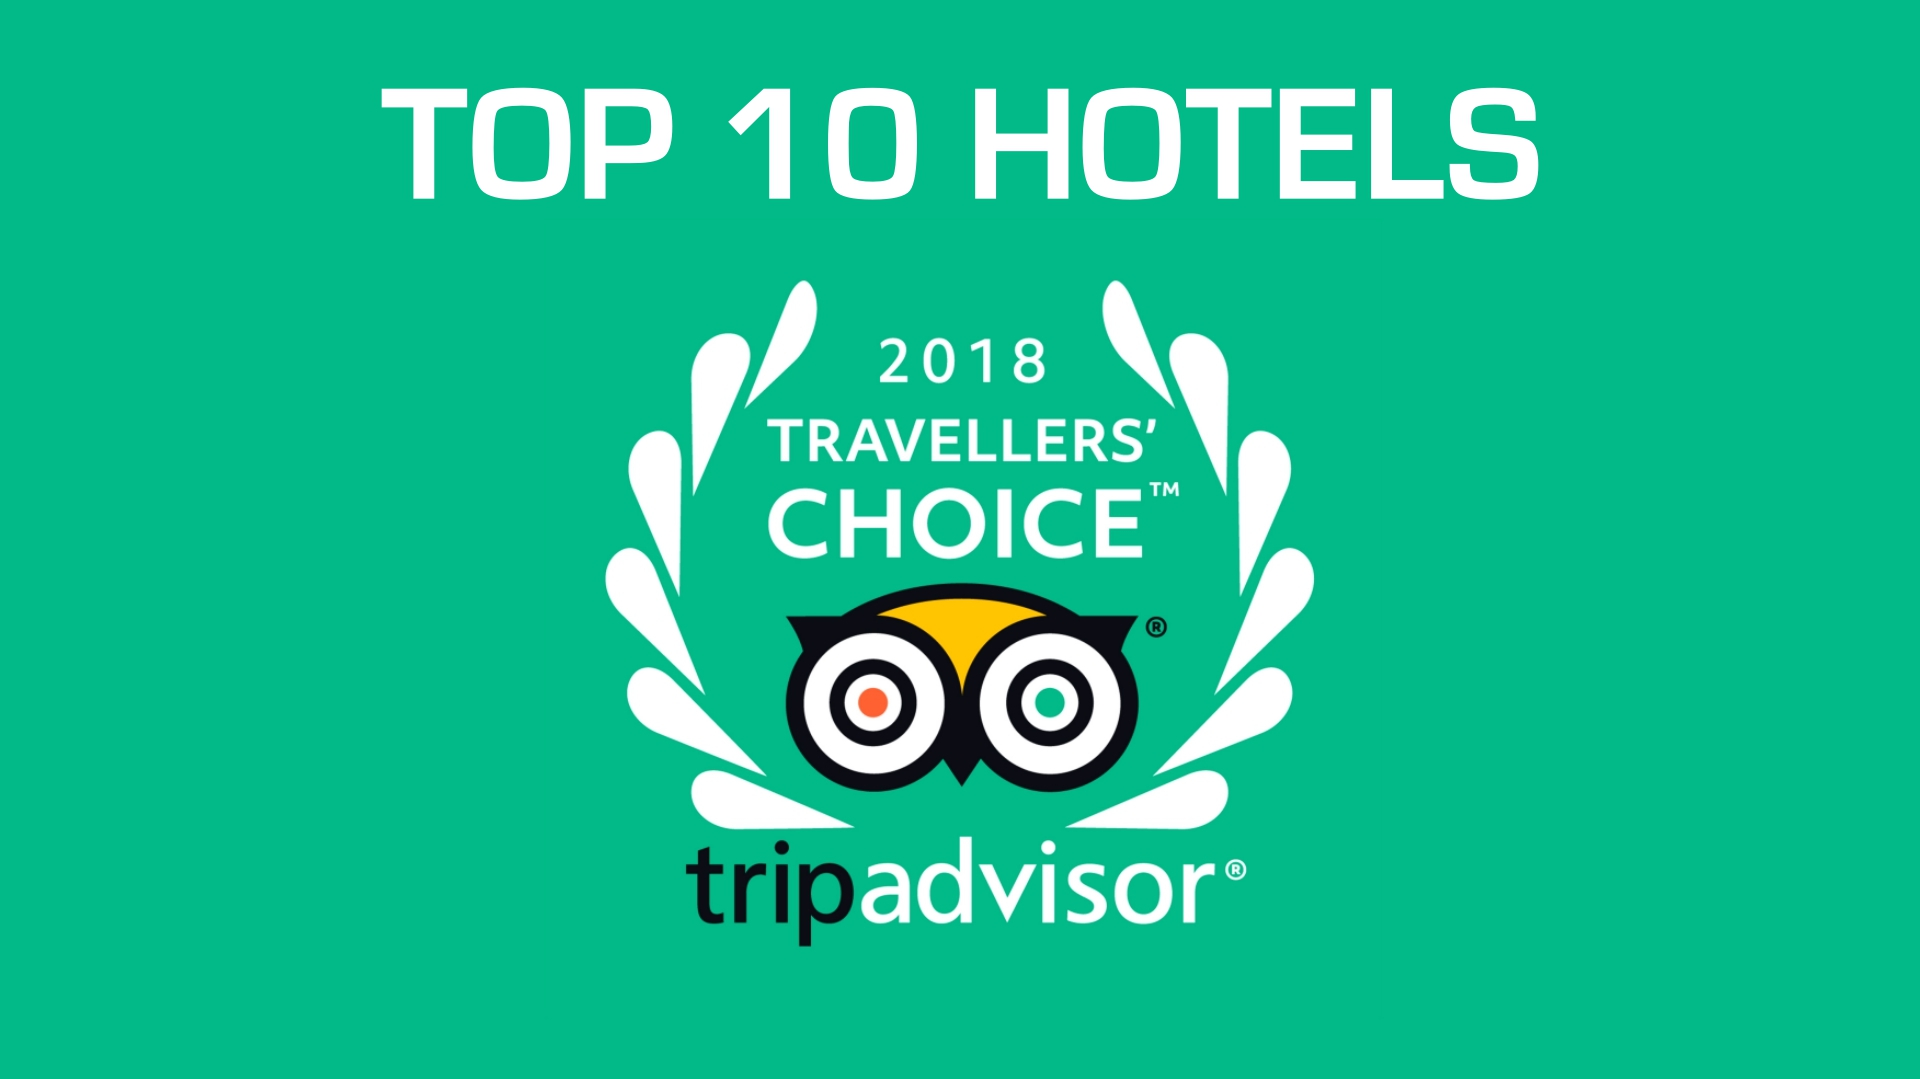 TripAdvisor Traveller's Choice® Awards 2018 For Hotels